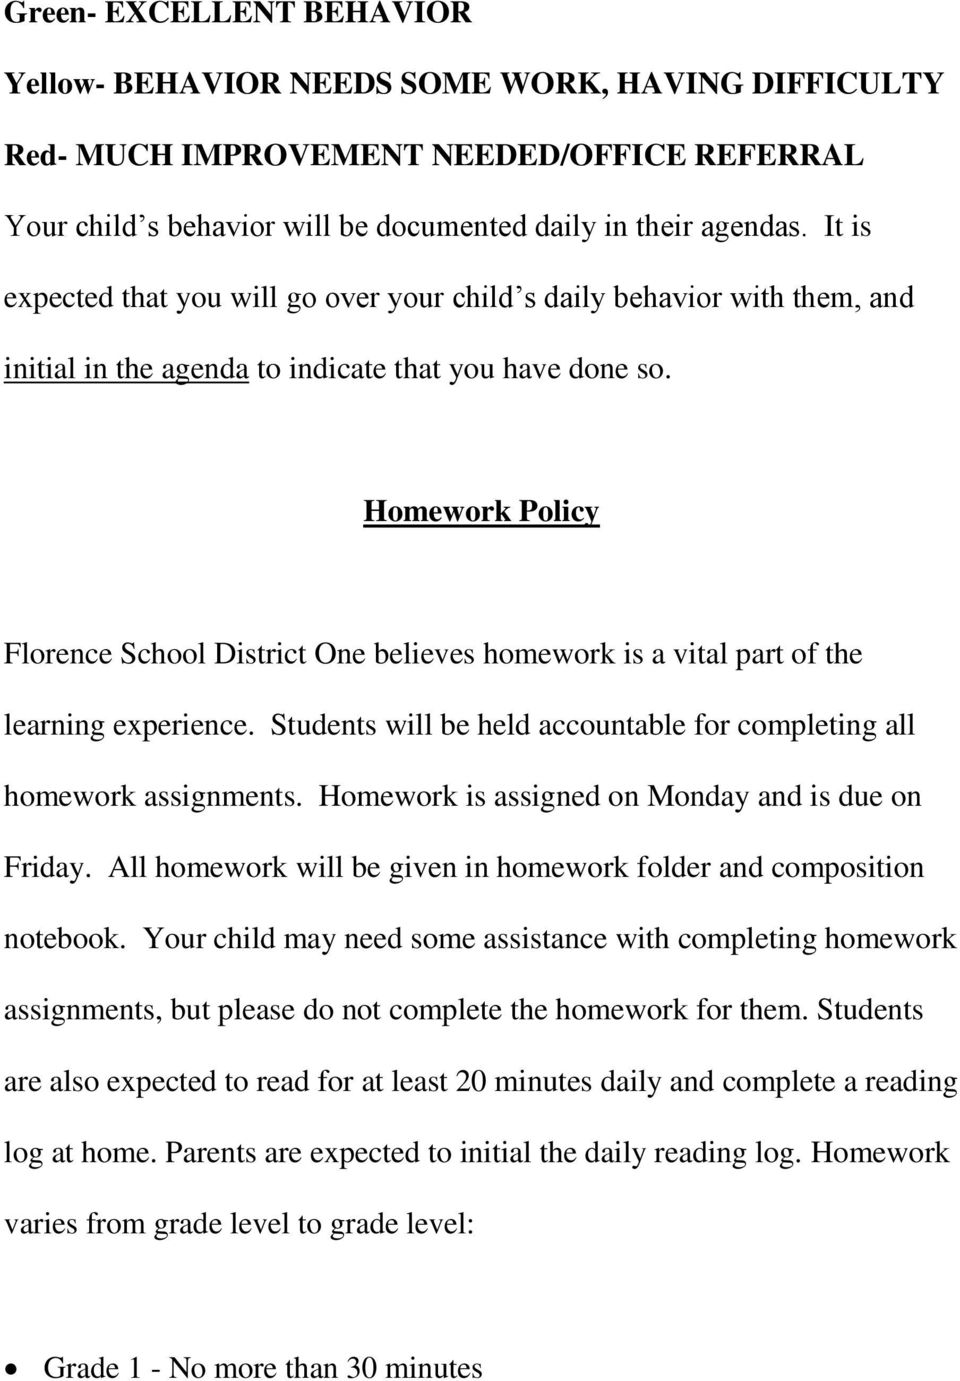 Homework Policy Florence School District One believes homework is a vital part of the learning experience. Students will be held accountable for completing all homework assignments.